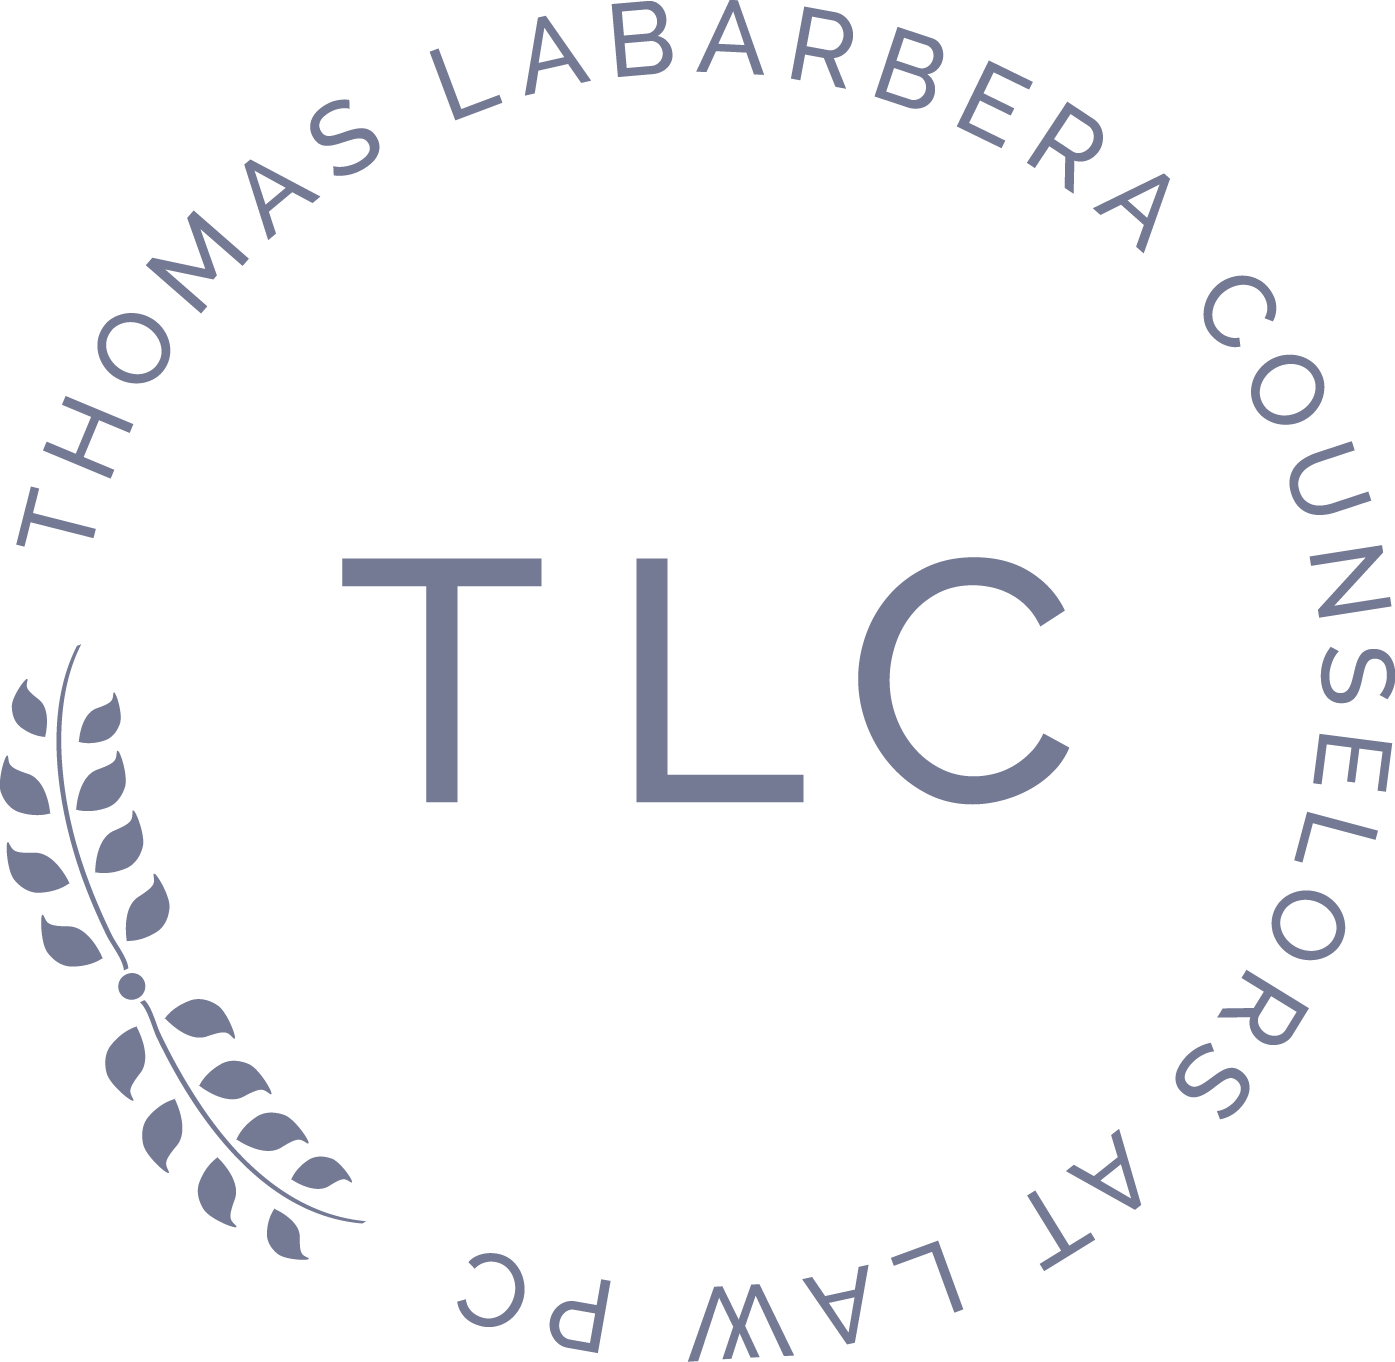 Thomas Labarbera Counselors At Law